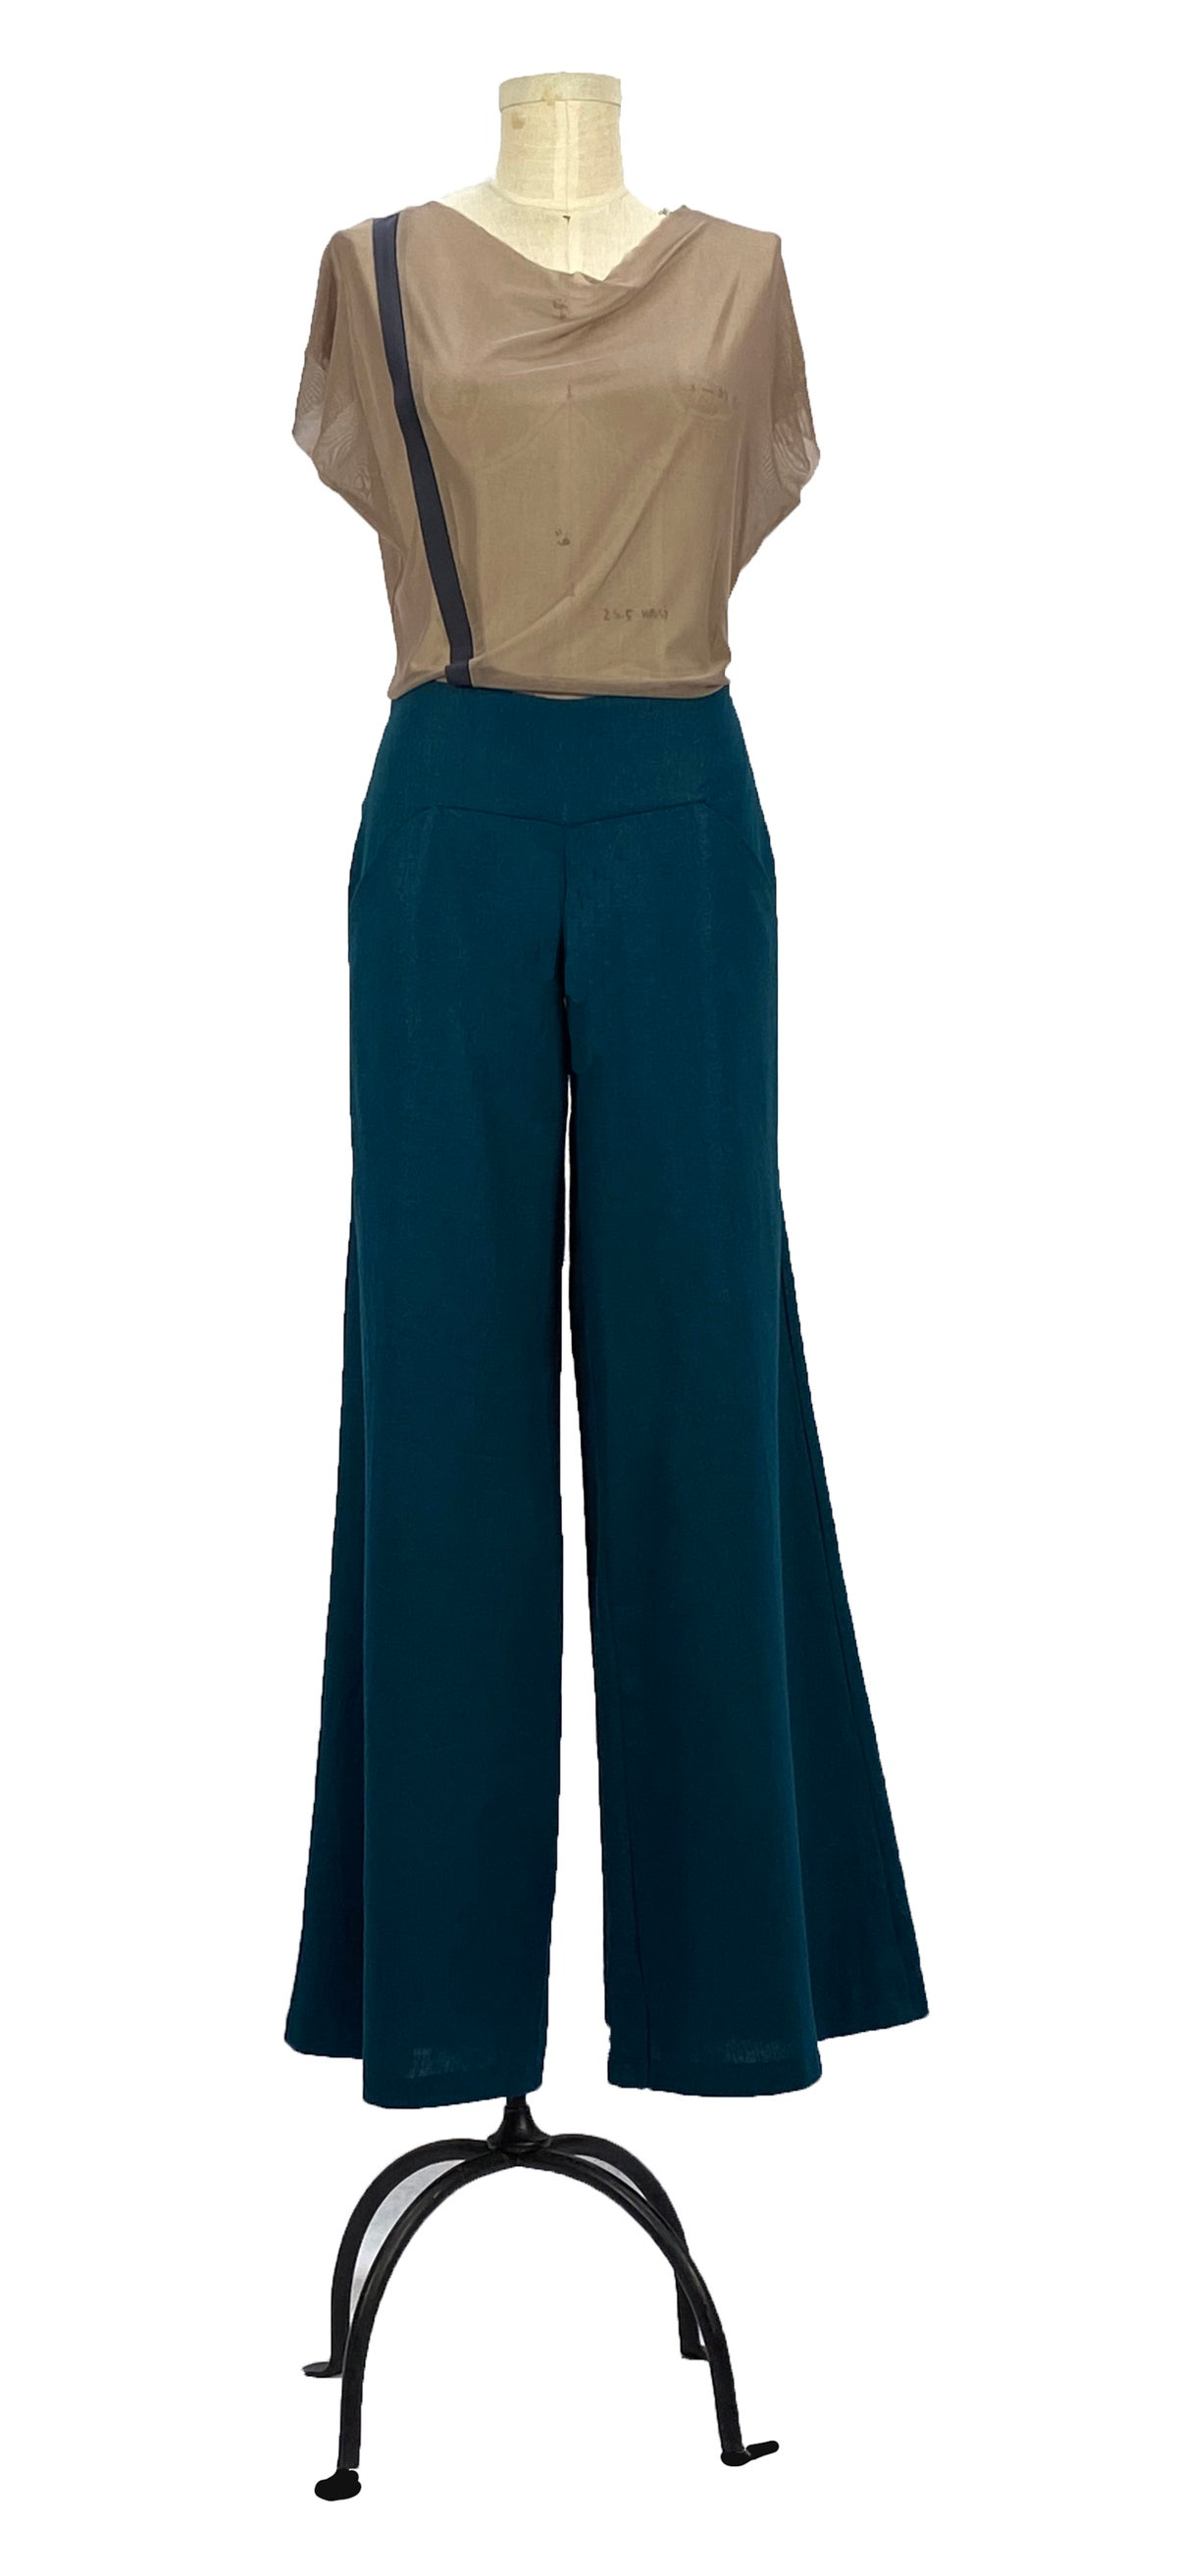 Image of Aquafina pants teal